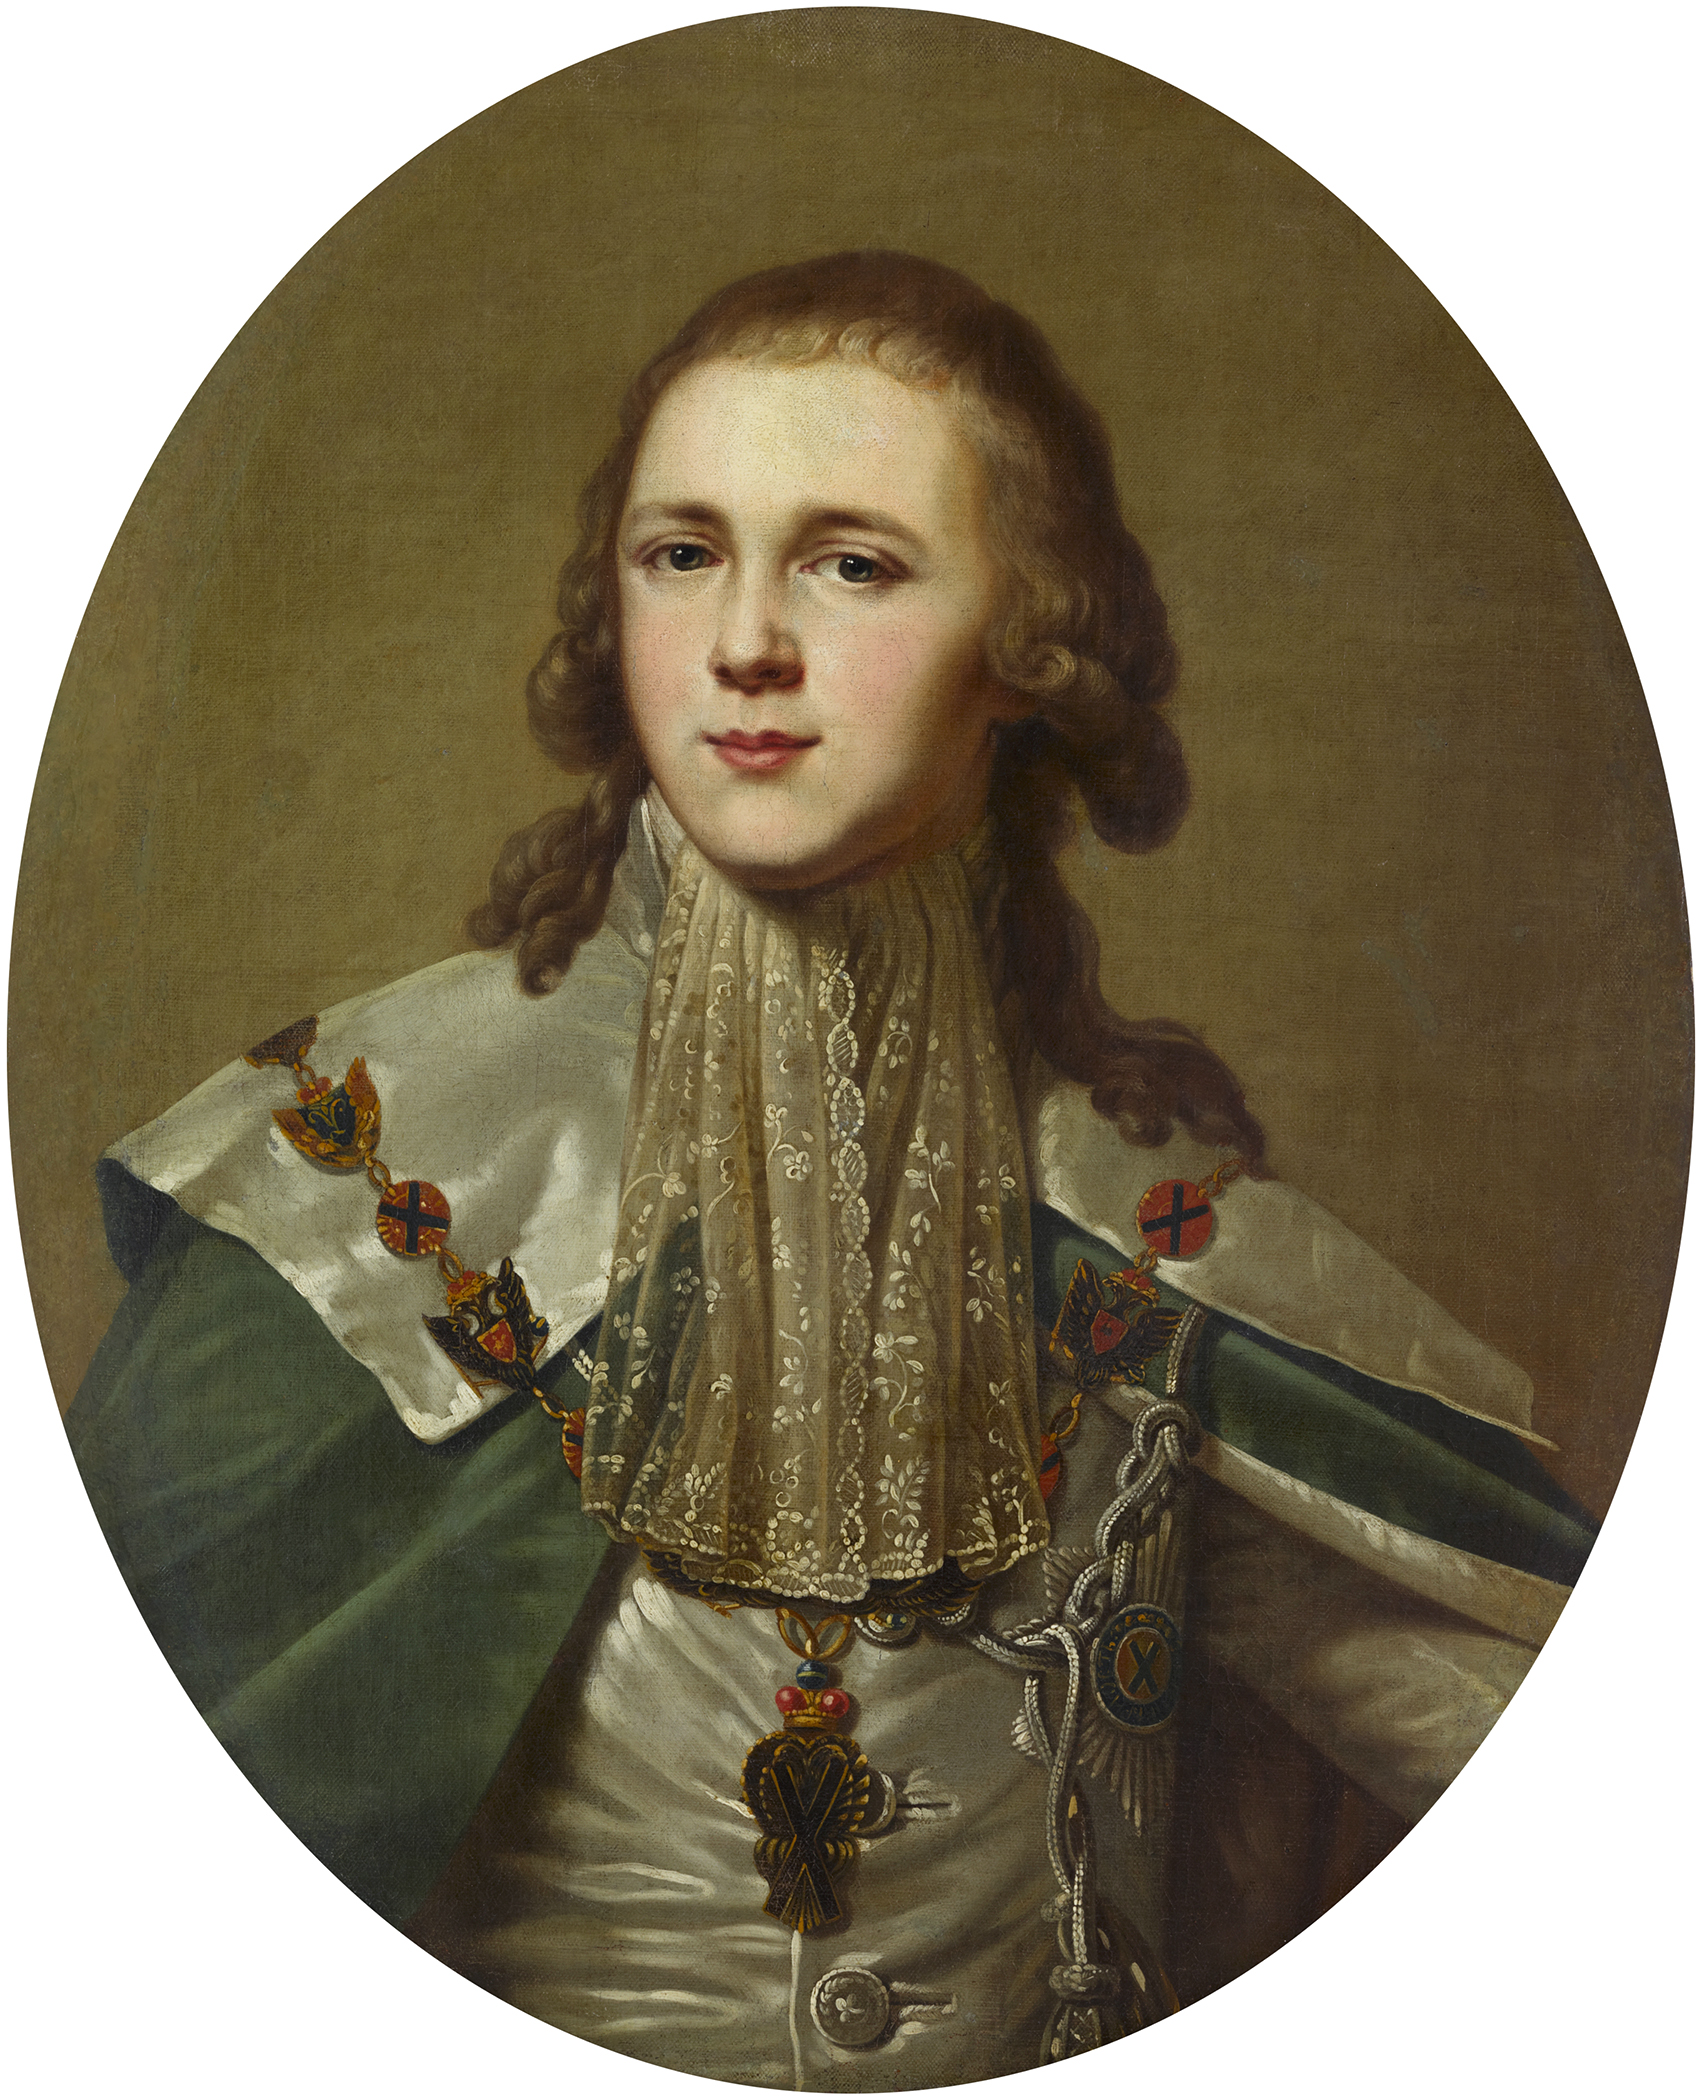 Portrait of Alexander Pavlovich (1777-1825), Grand Duke and Heir to the throne of Russia (1796-1801),  Emperor of Russia (Alexander I) from 1801 to 1825; Grand Duke of Finland (1809-1825), King of Poland (1815-1825) | Portraits of Kings